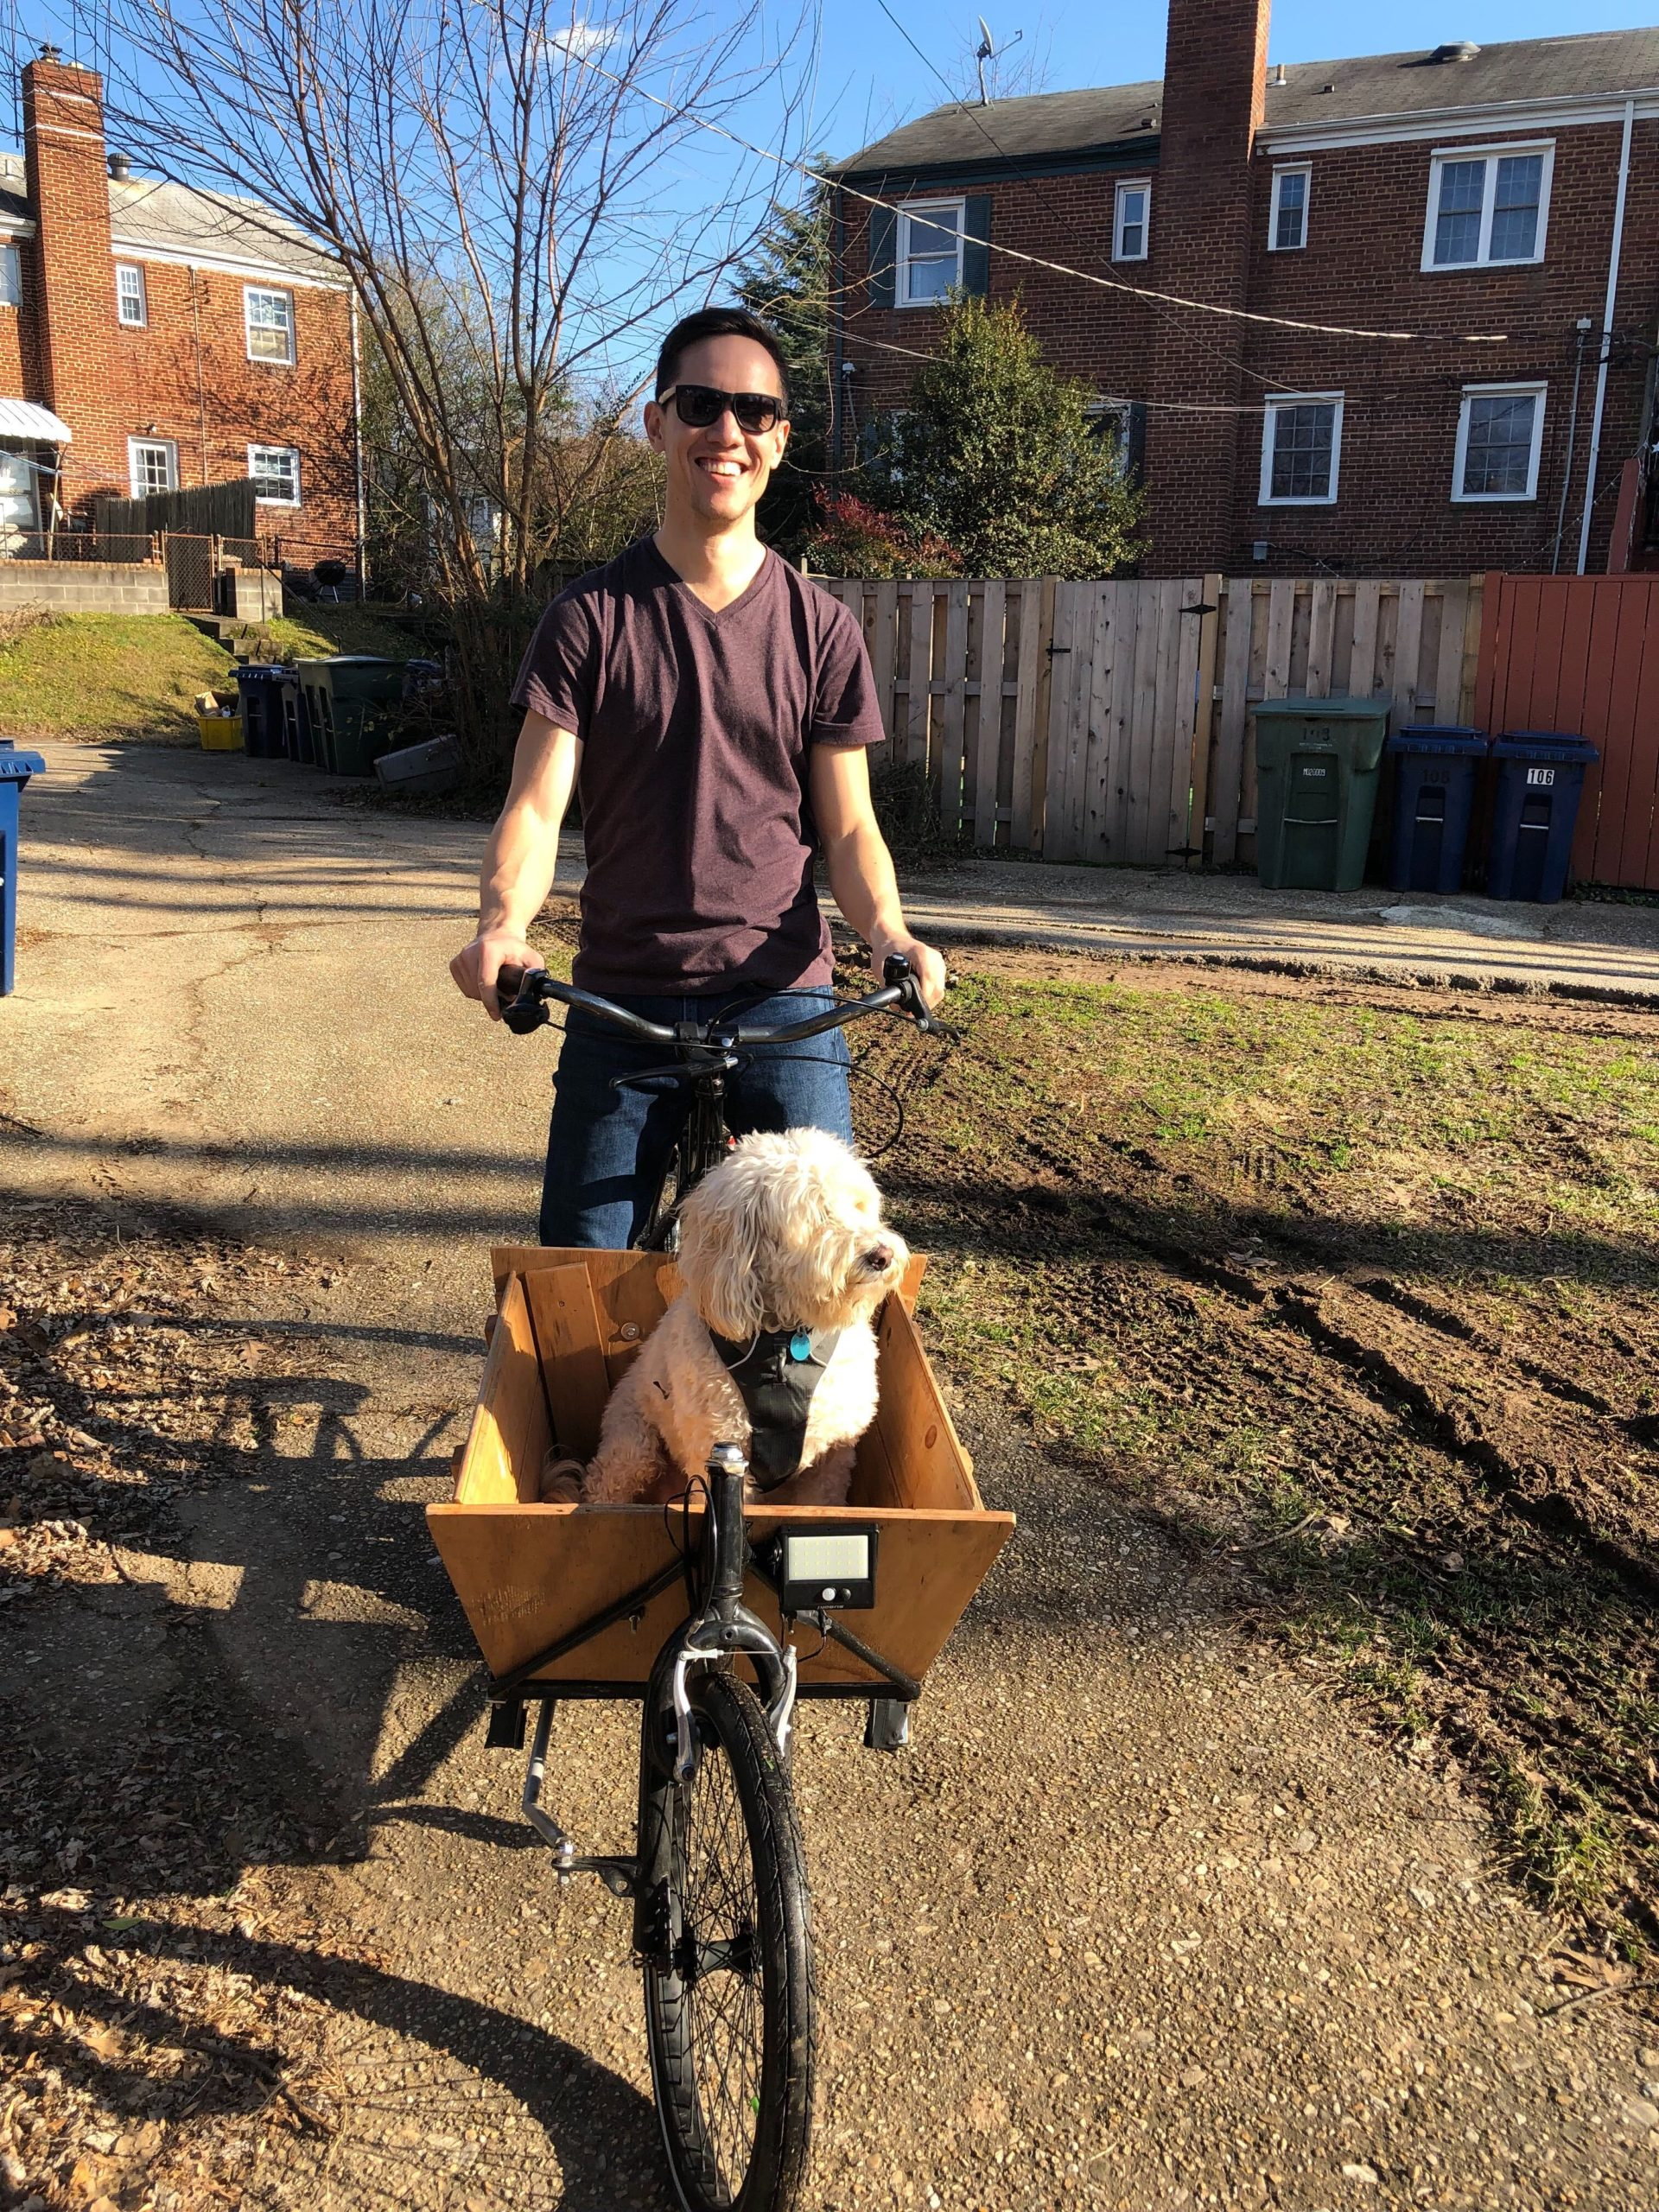 Victor Yaguchi on a front loading cargo bike with a dog